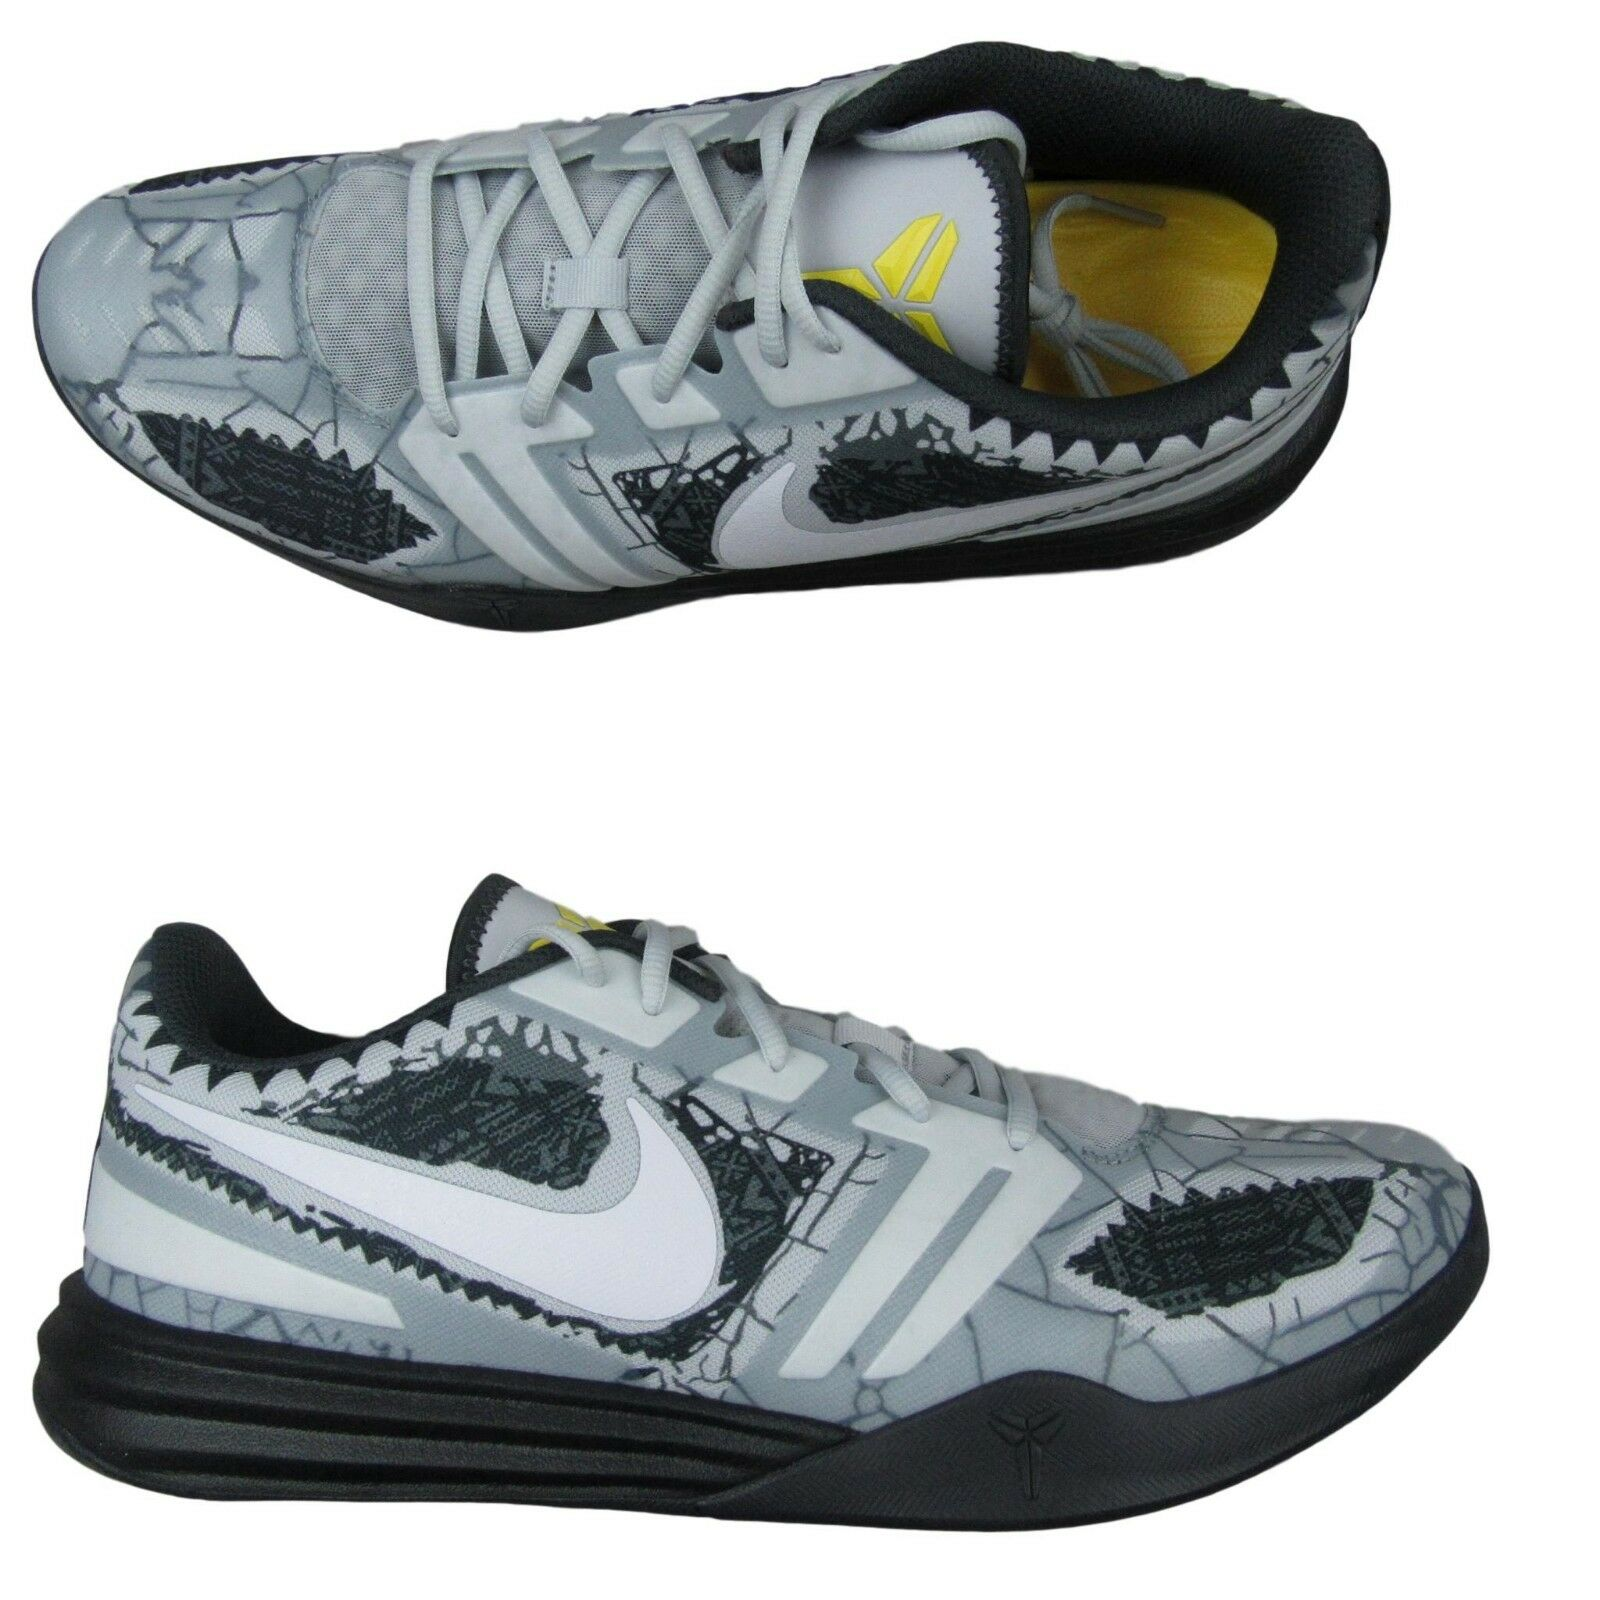 6b2d92721fdf Nike Kobe Mentality Cracked Pavement Basketball Shoes Size 13 Grey ...